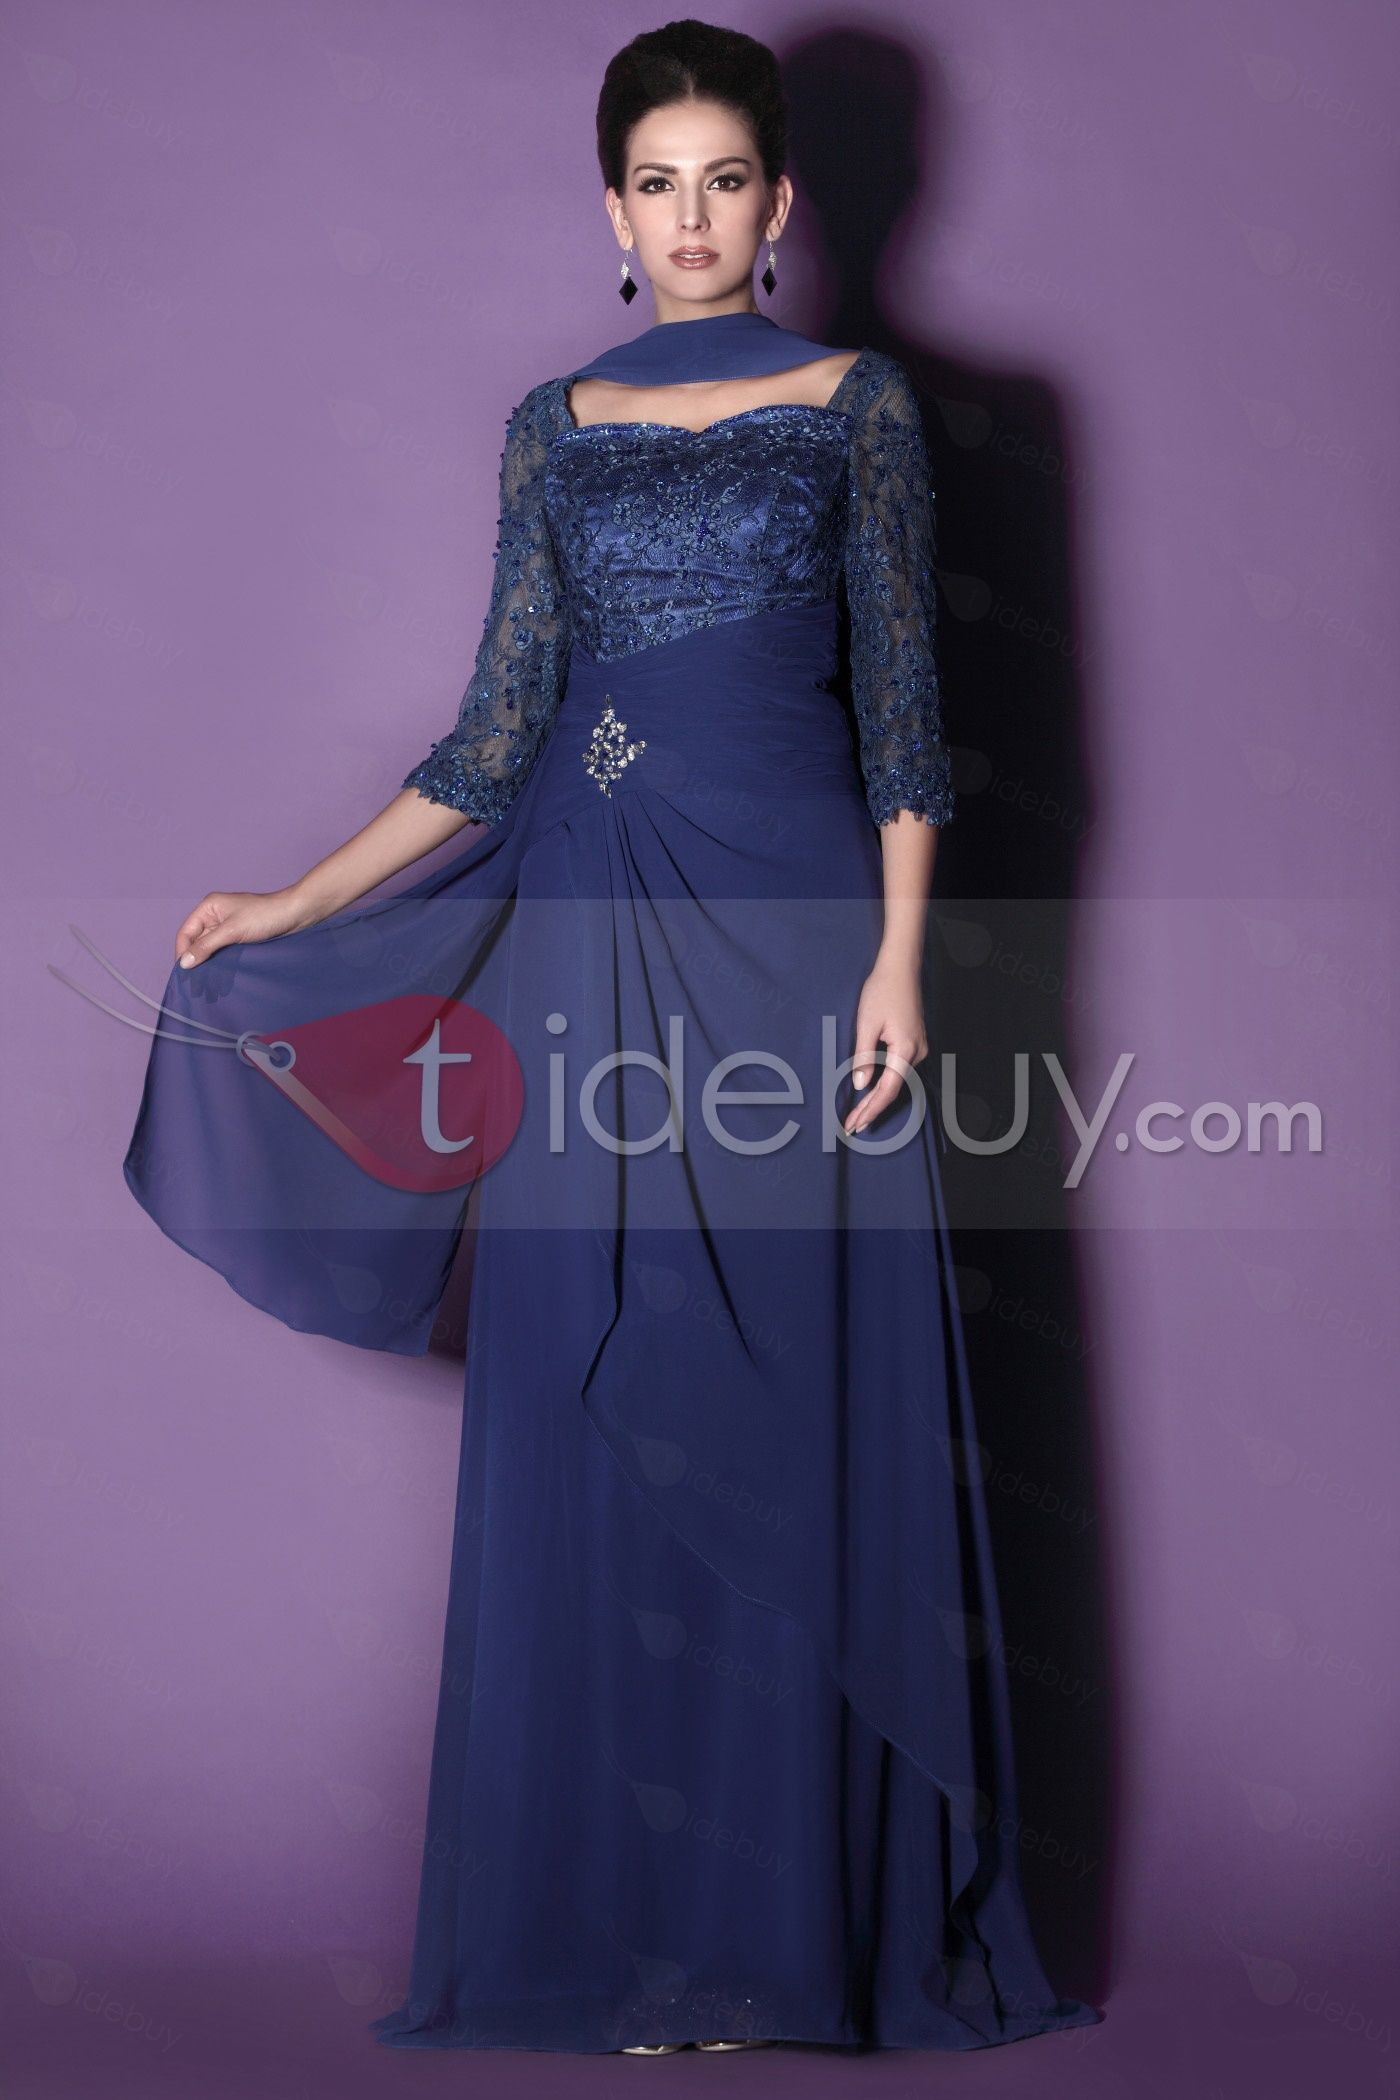 45f5e292ccb Gorgeous Lace A-Line Sweetheart Neckline 3 4-Sleeves Floor-length Taline s  Mother of the Bride Dress   Tidebuy.com